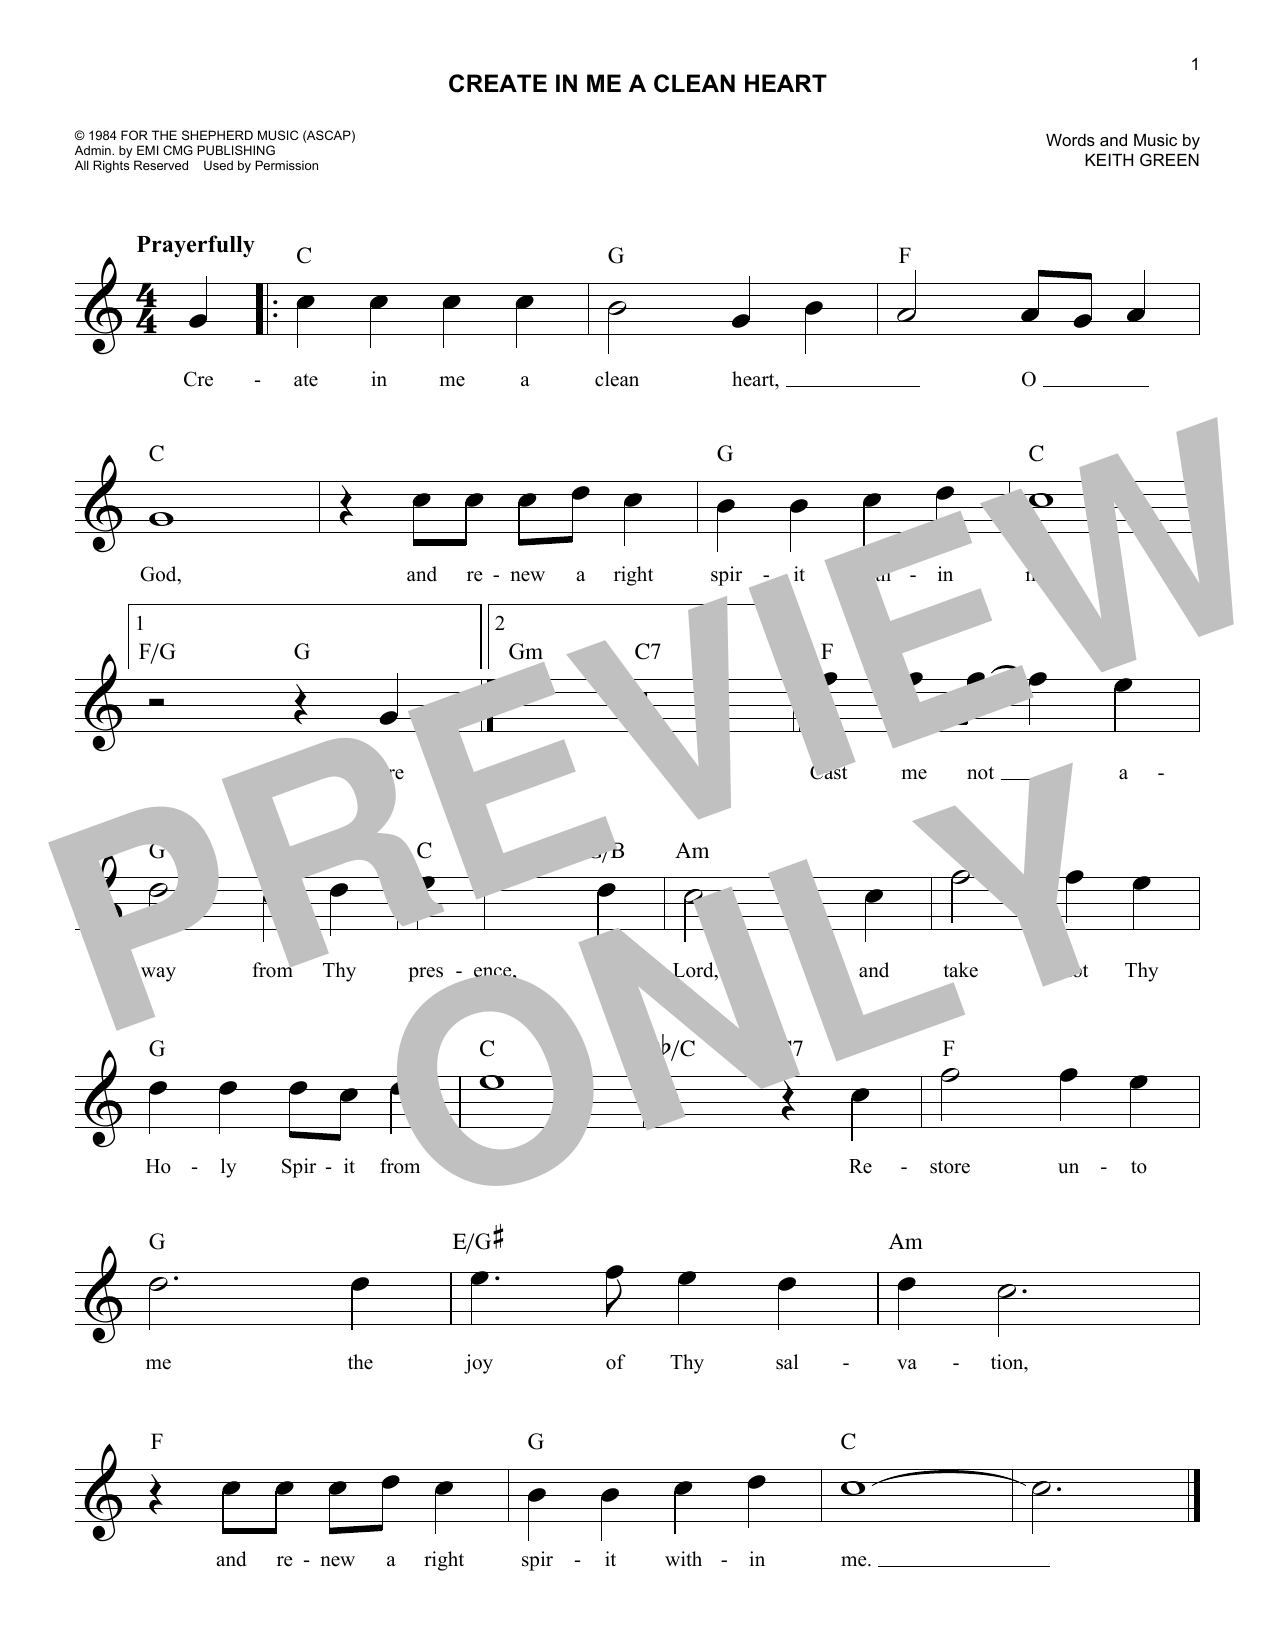 Sheet Music Digital Files To Print Licensed Keith Green Digital